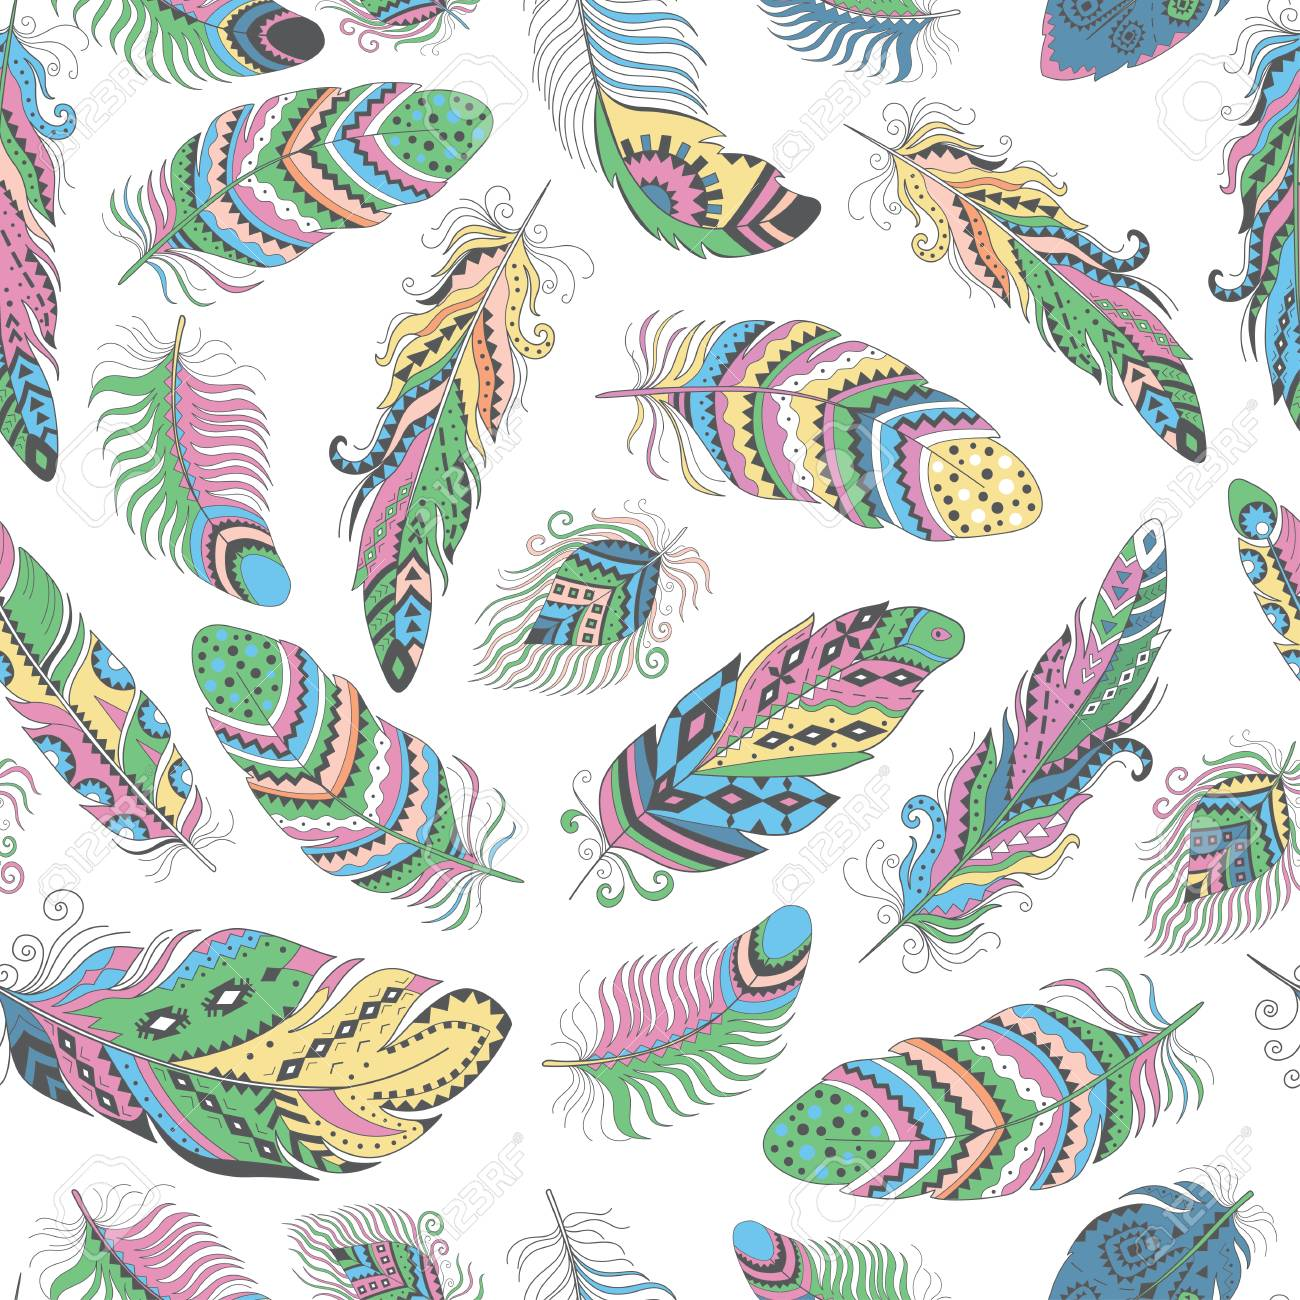 Feathers Boho Seamless Pattern Tribal Ethnic Background Texture Clothing Design Wallpaper Wrapping